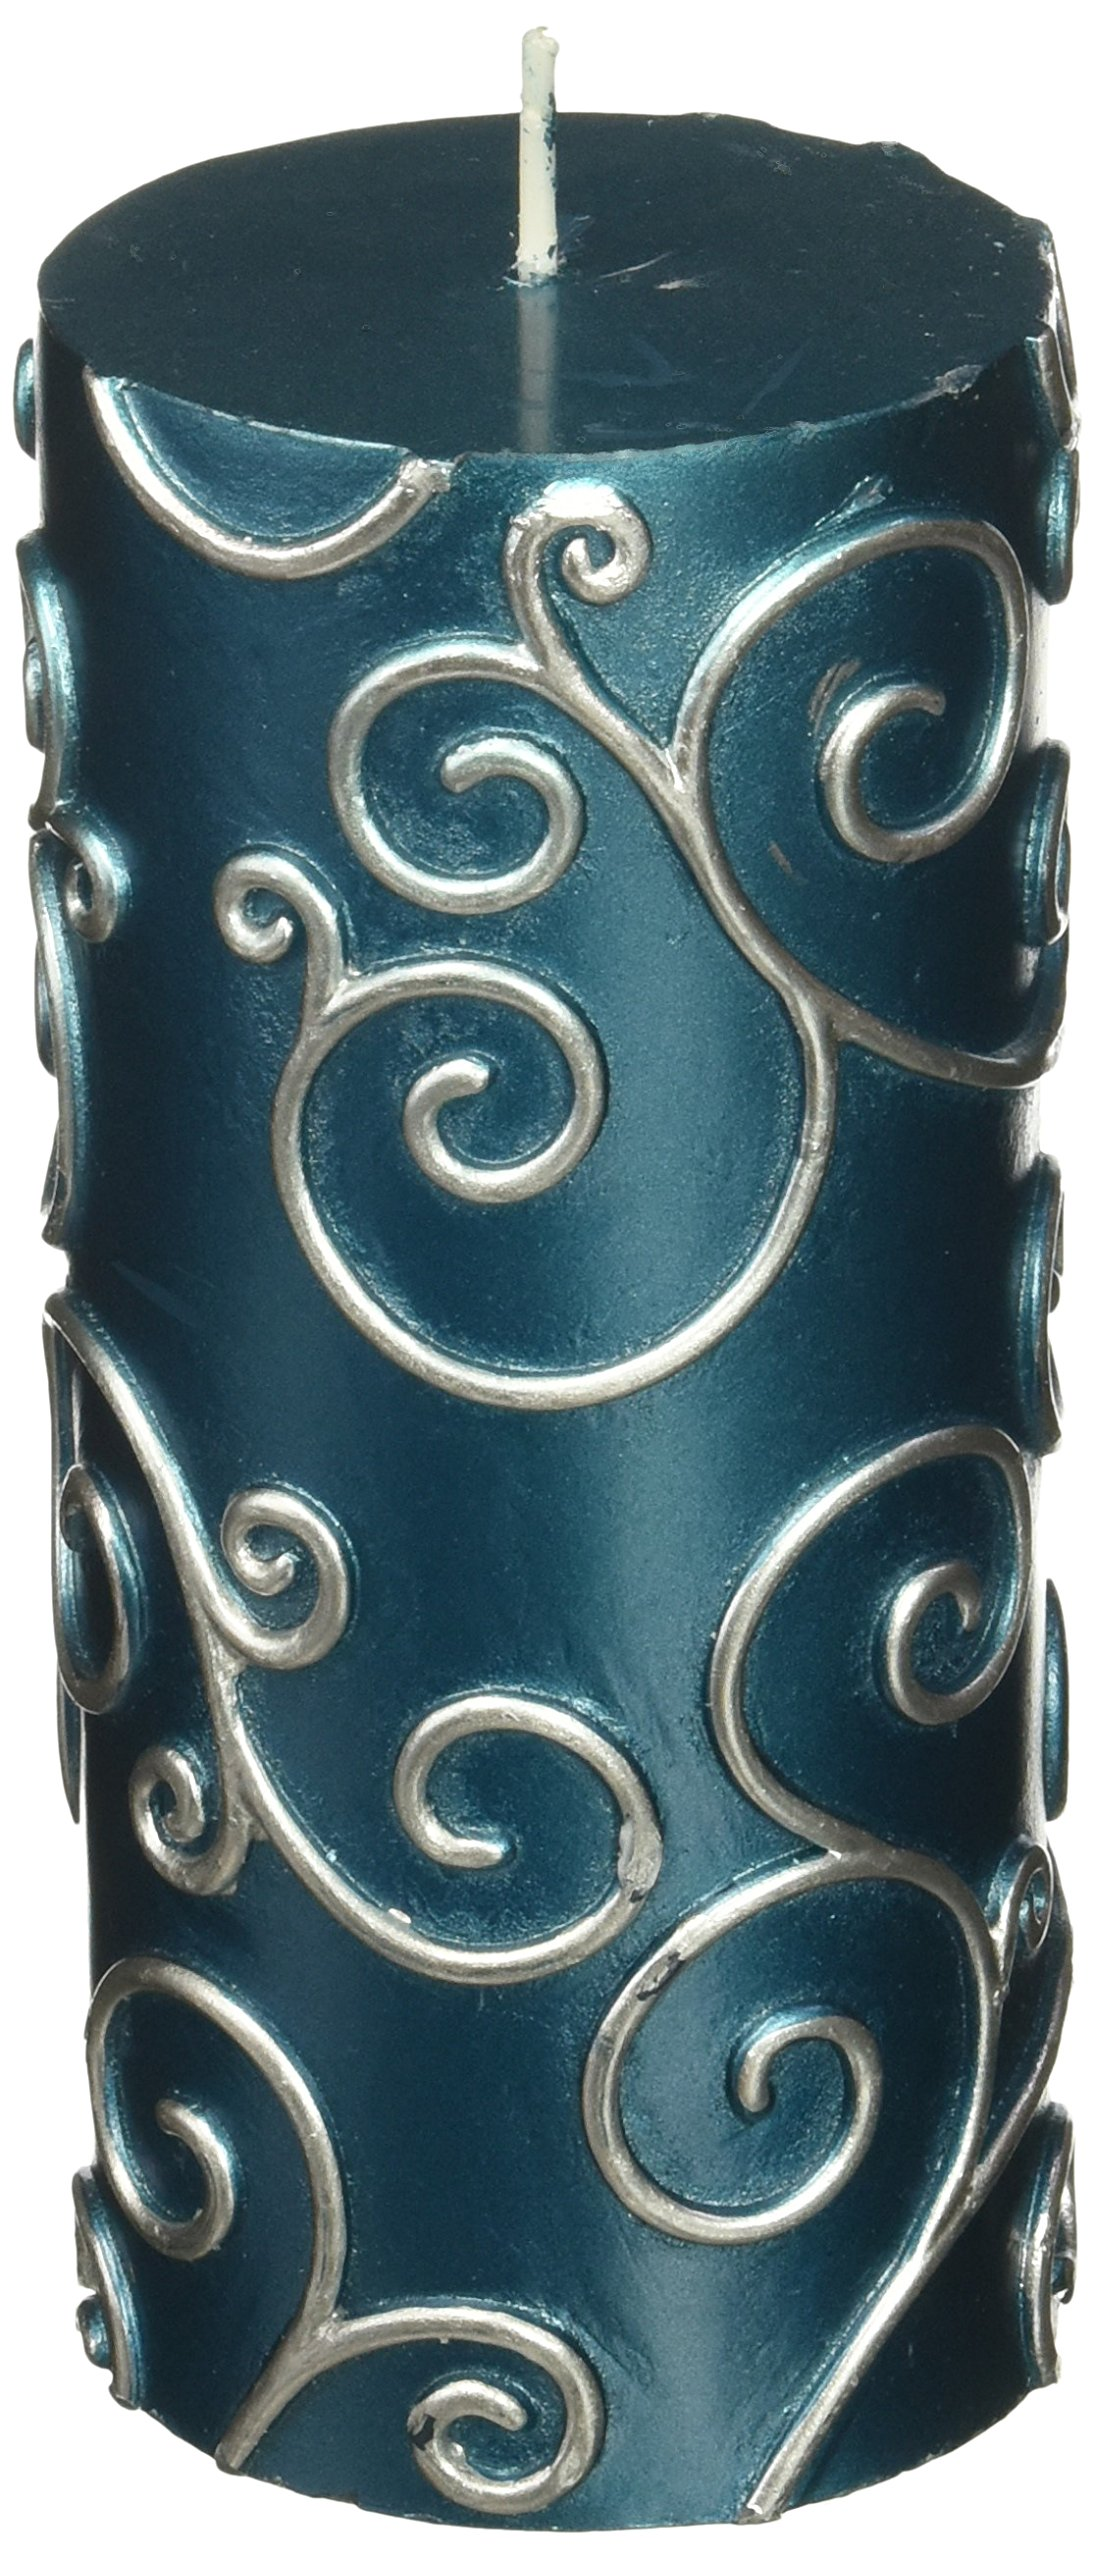 Zest Candle CPS-008_12 12-Piece Scroll Pillar Candle, 3'' x 6'', Blue by Zest Candle (Image #1)